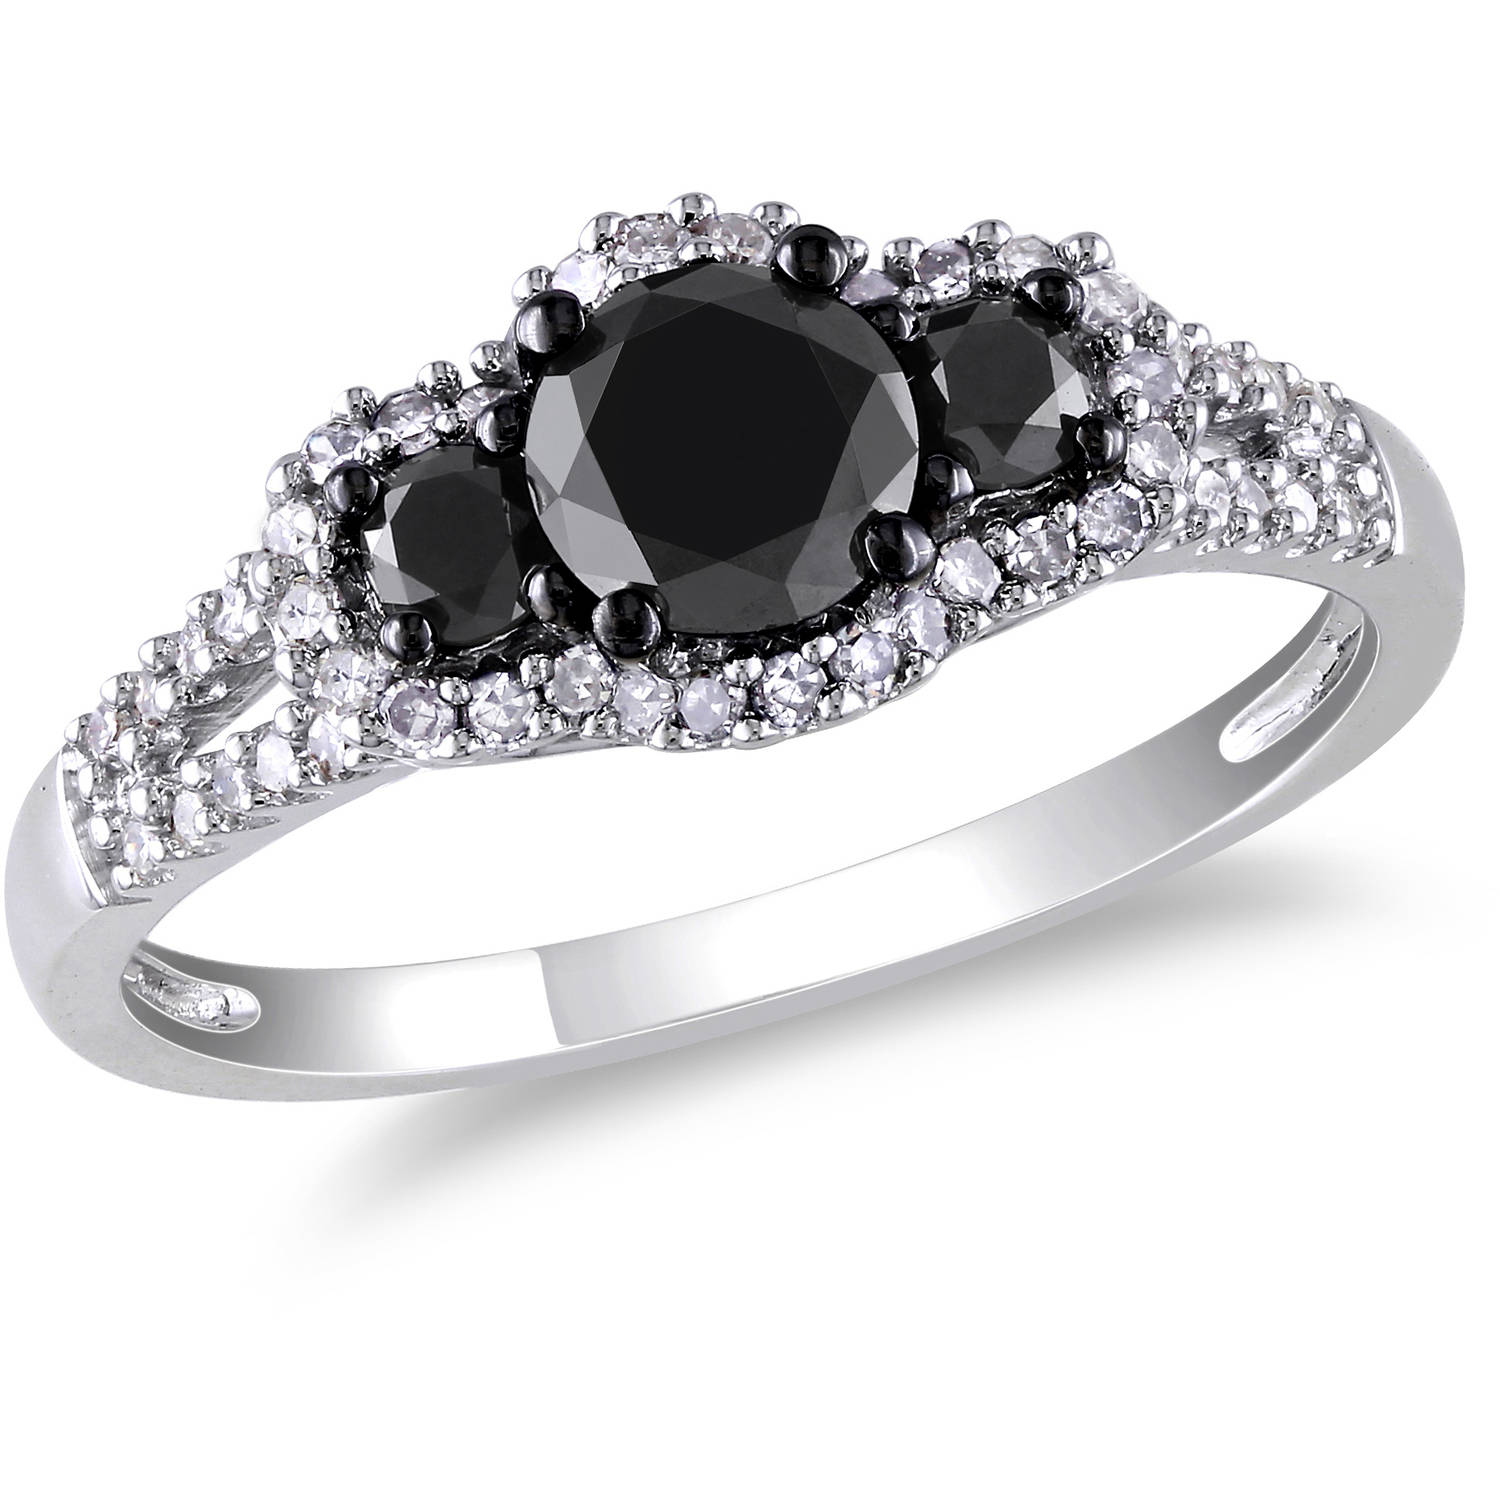 Inspirational Black and White Diamond Rings In White Gold